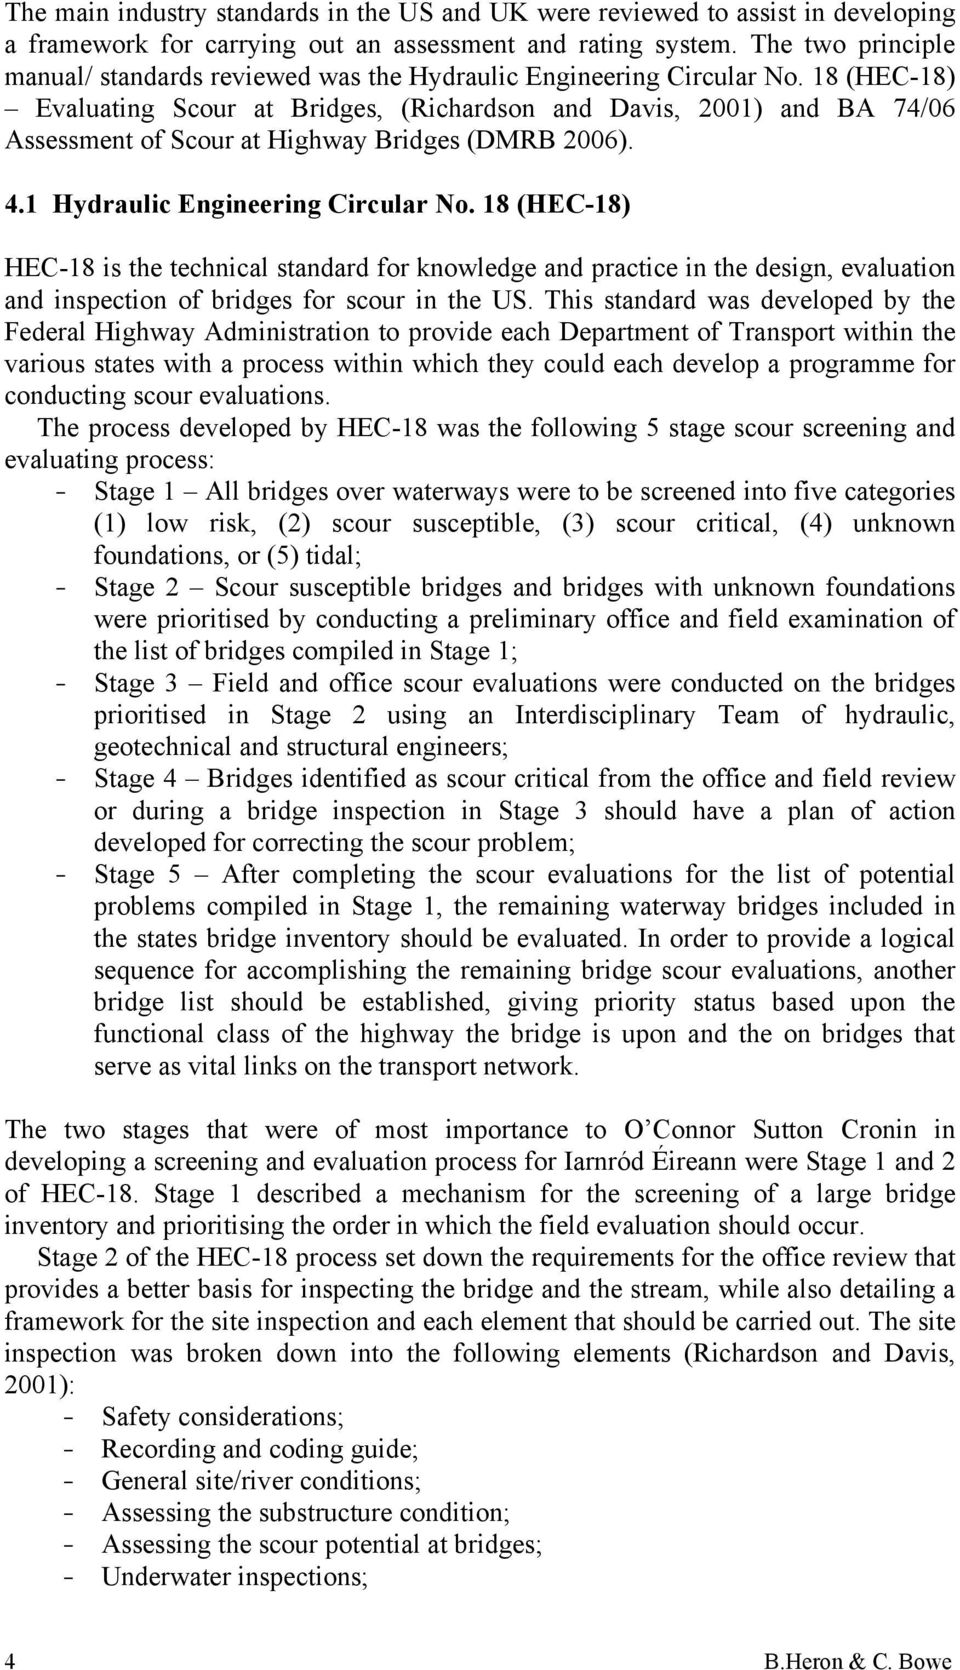 18 (HEC-18) Evaluating Scour at Bridges, (Richardson and Davis, 2001) and BA 74/06 Assessment of Scour at Highway Bridges (DMRB 2006). 4.1 Hydraulic Engineering Circular No.